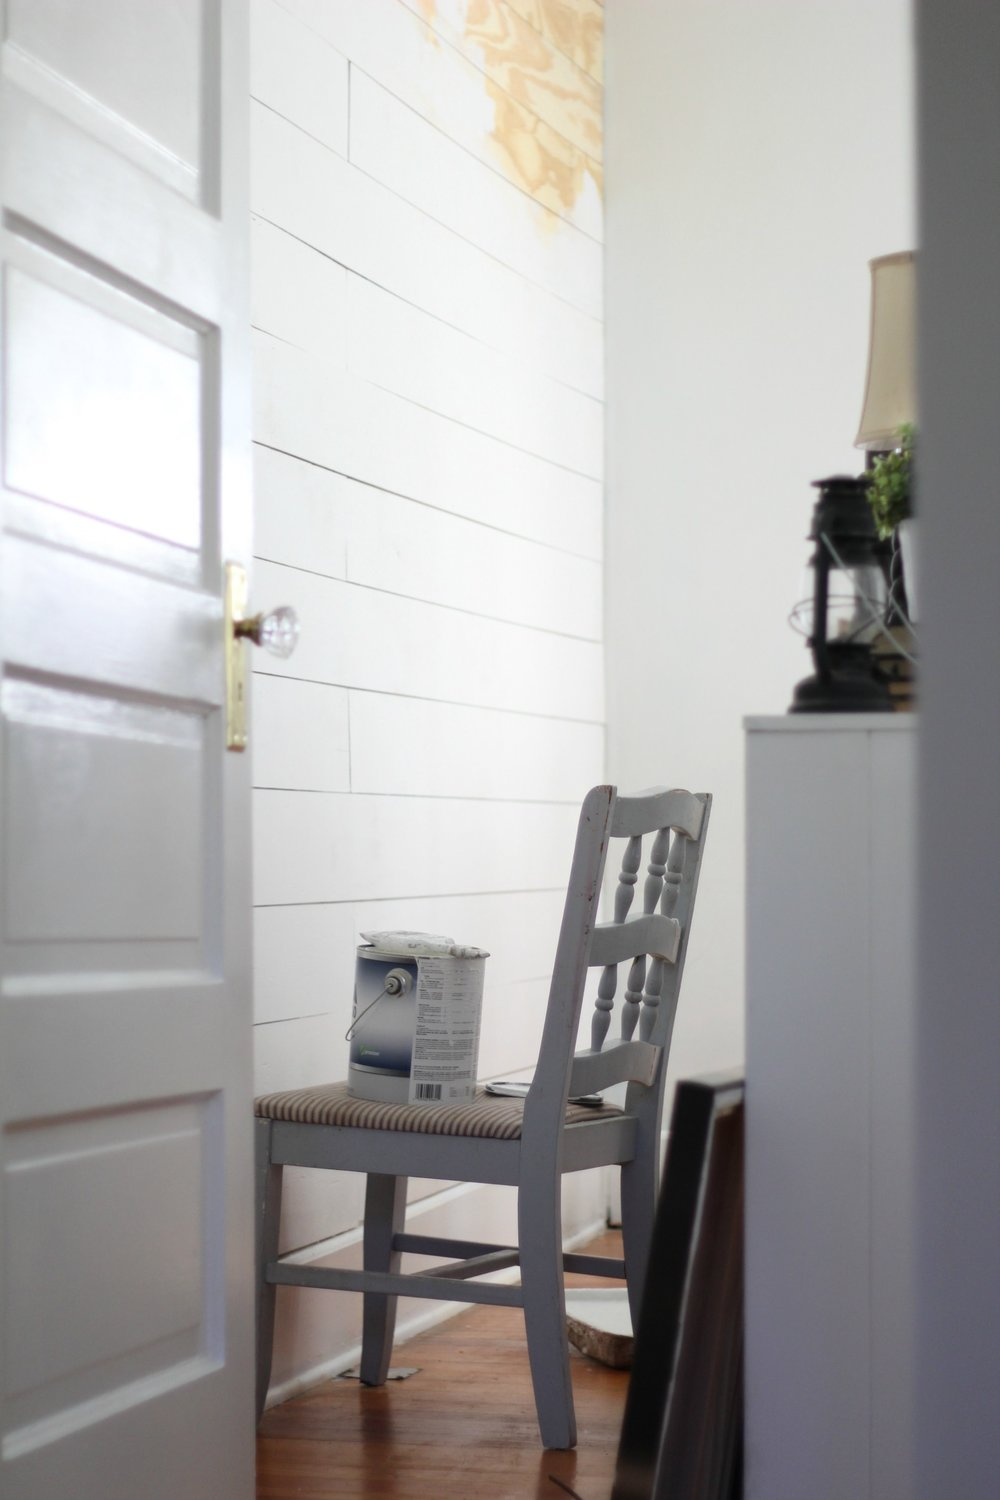 paint on a chair that is being painted onto a DIY Shiplap wall.